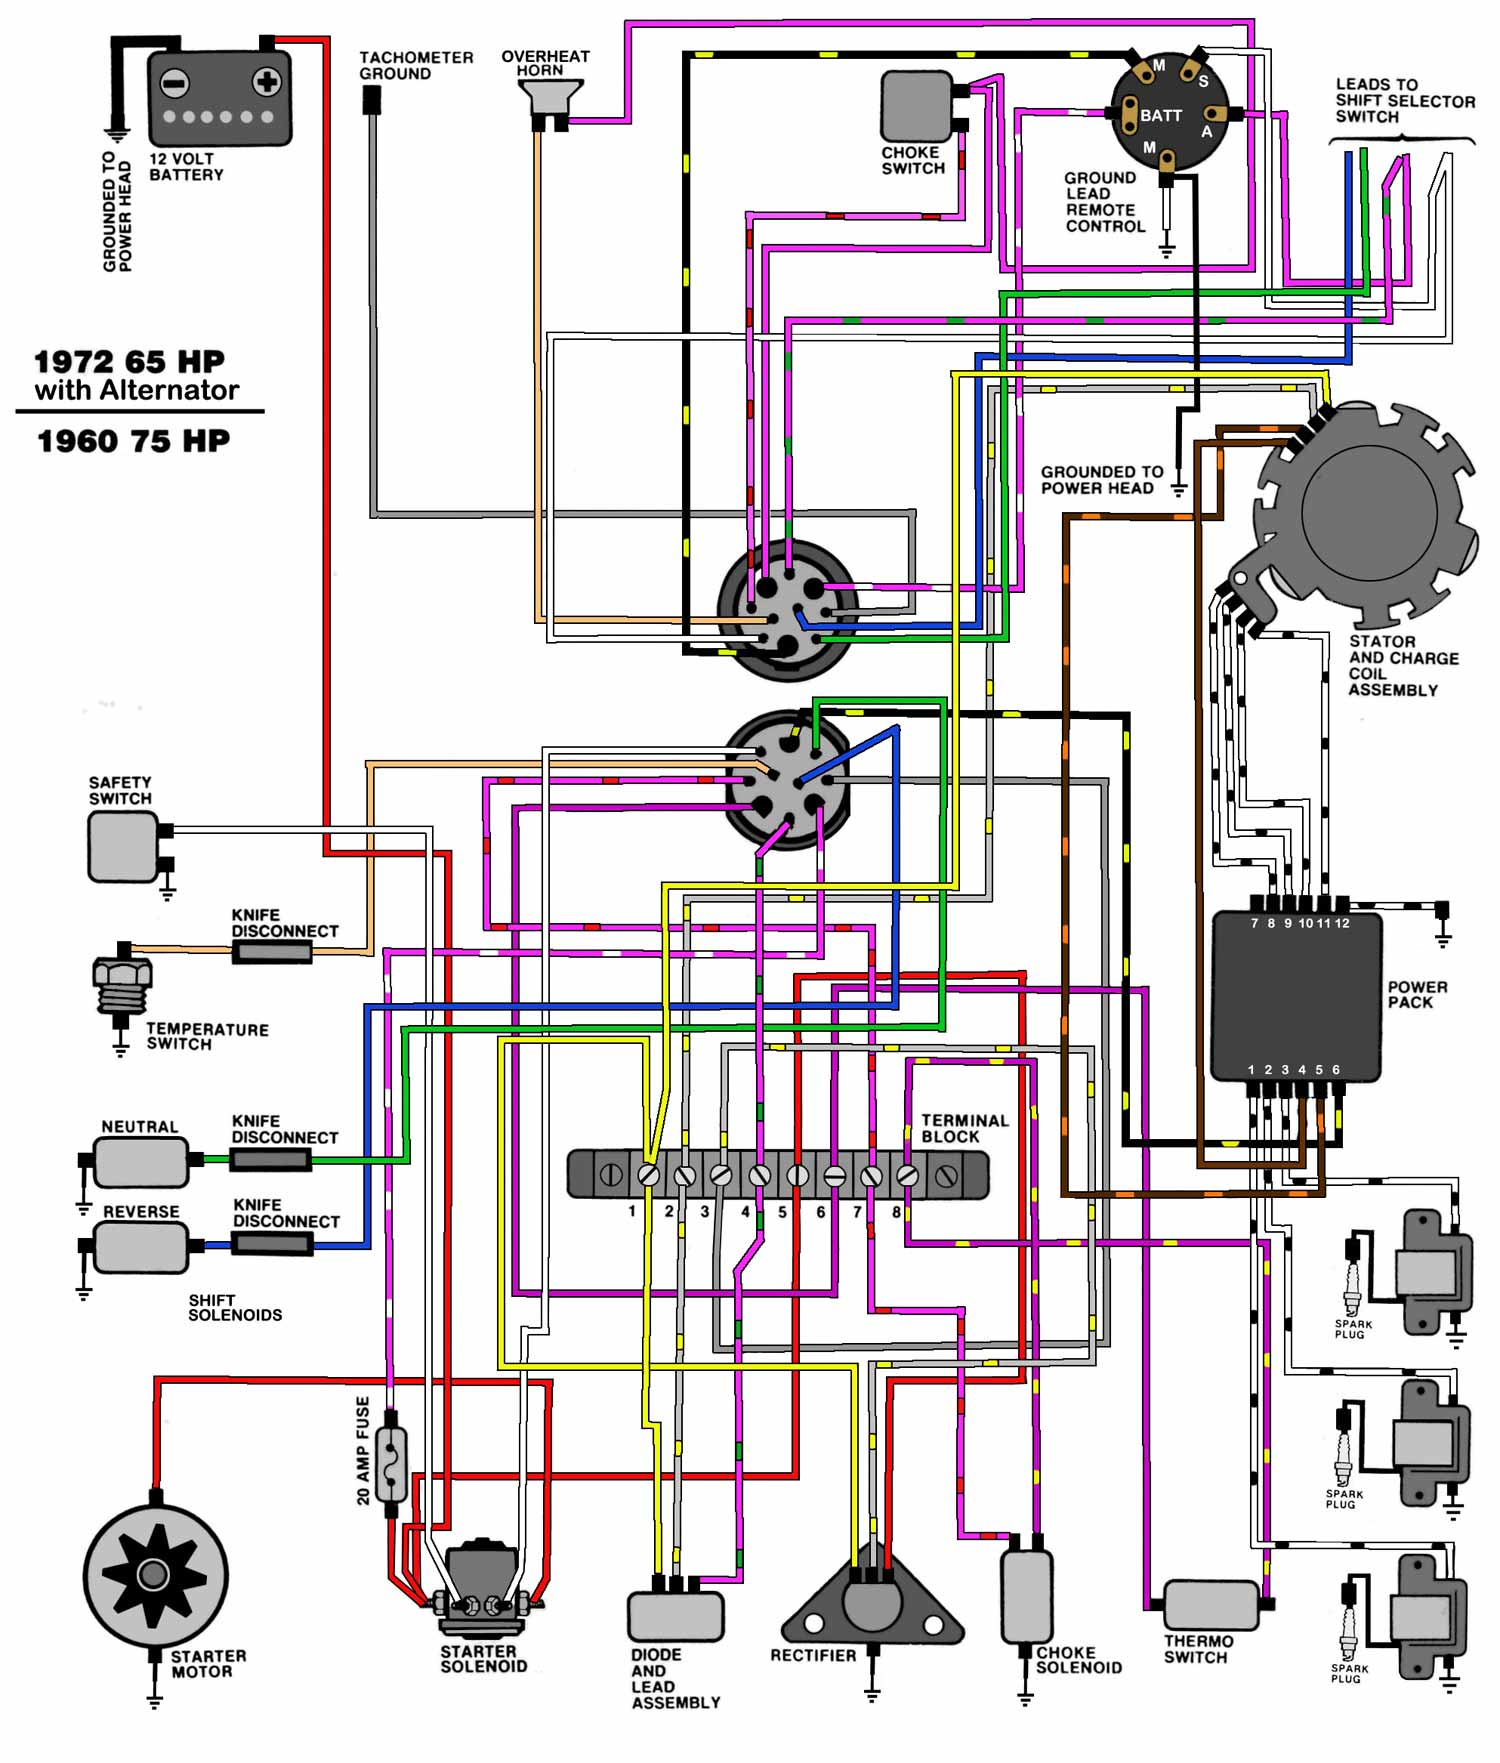 hight resolution of johnson neutral safety switch wiring diagram wiring diagram data johnson neutral safety switch wiring diagram